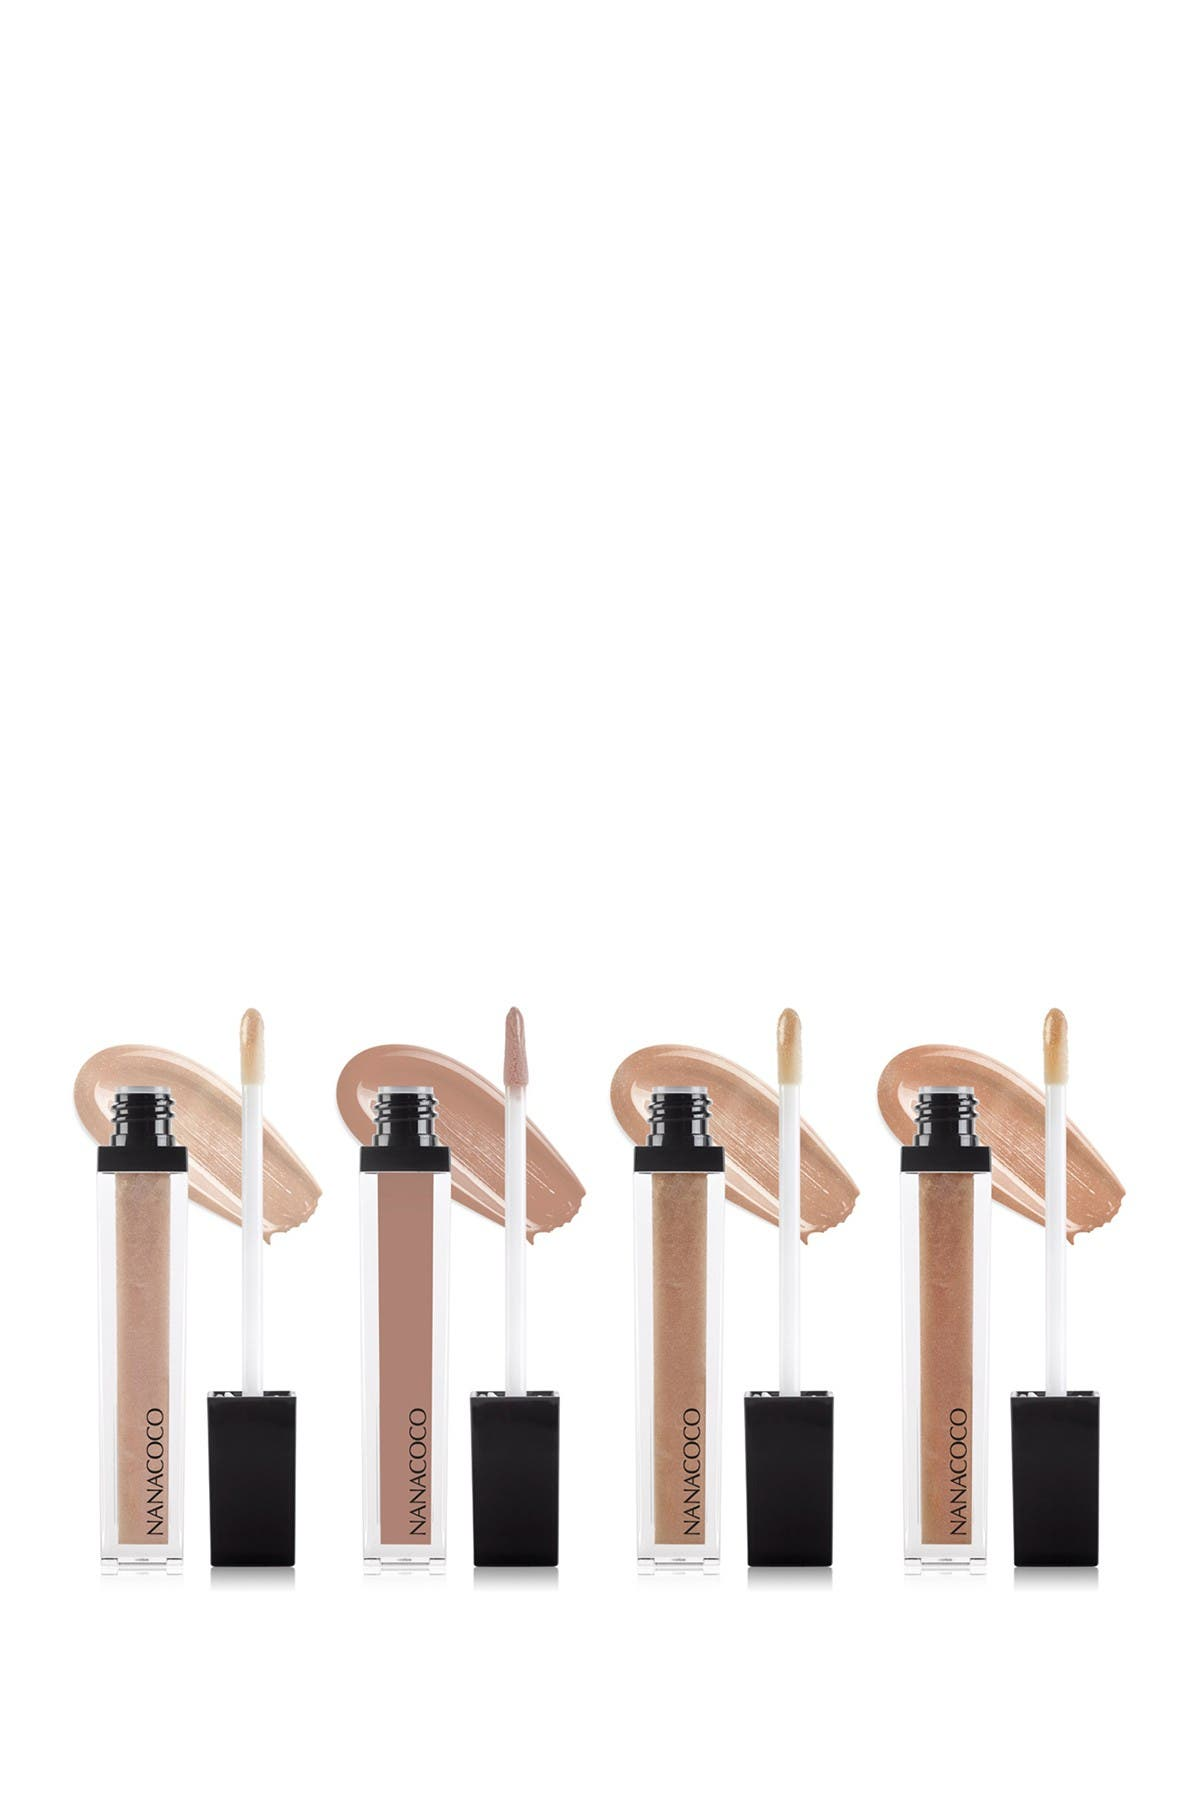 Image of Nanacoco Nothing But Nude 4-Piece Original Lip Gloss Collection